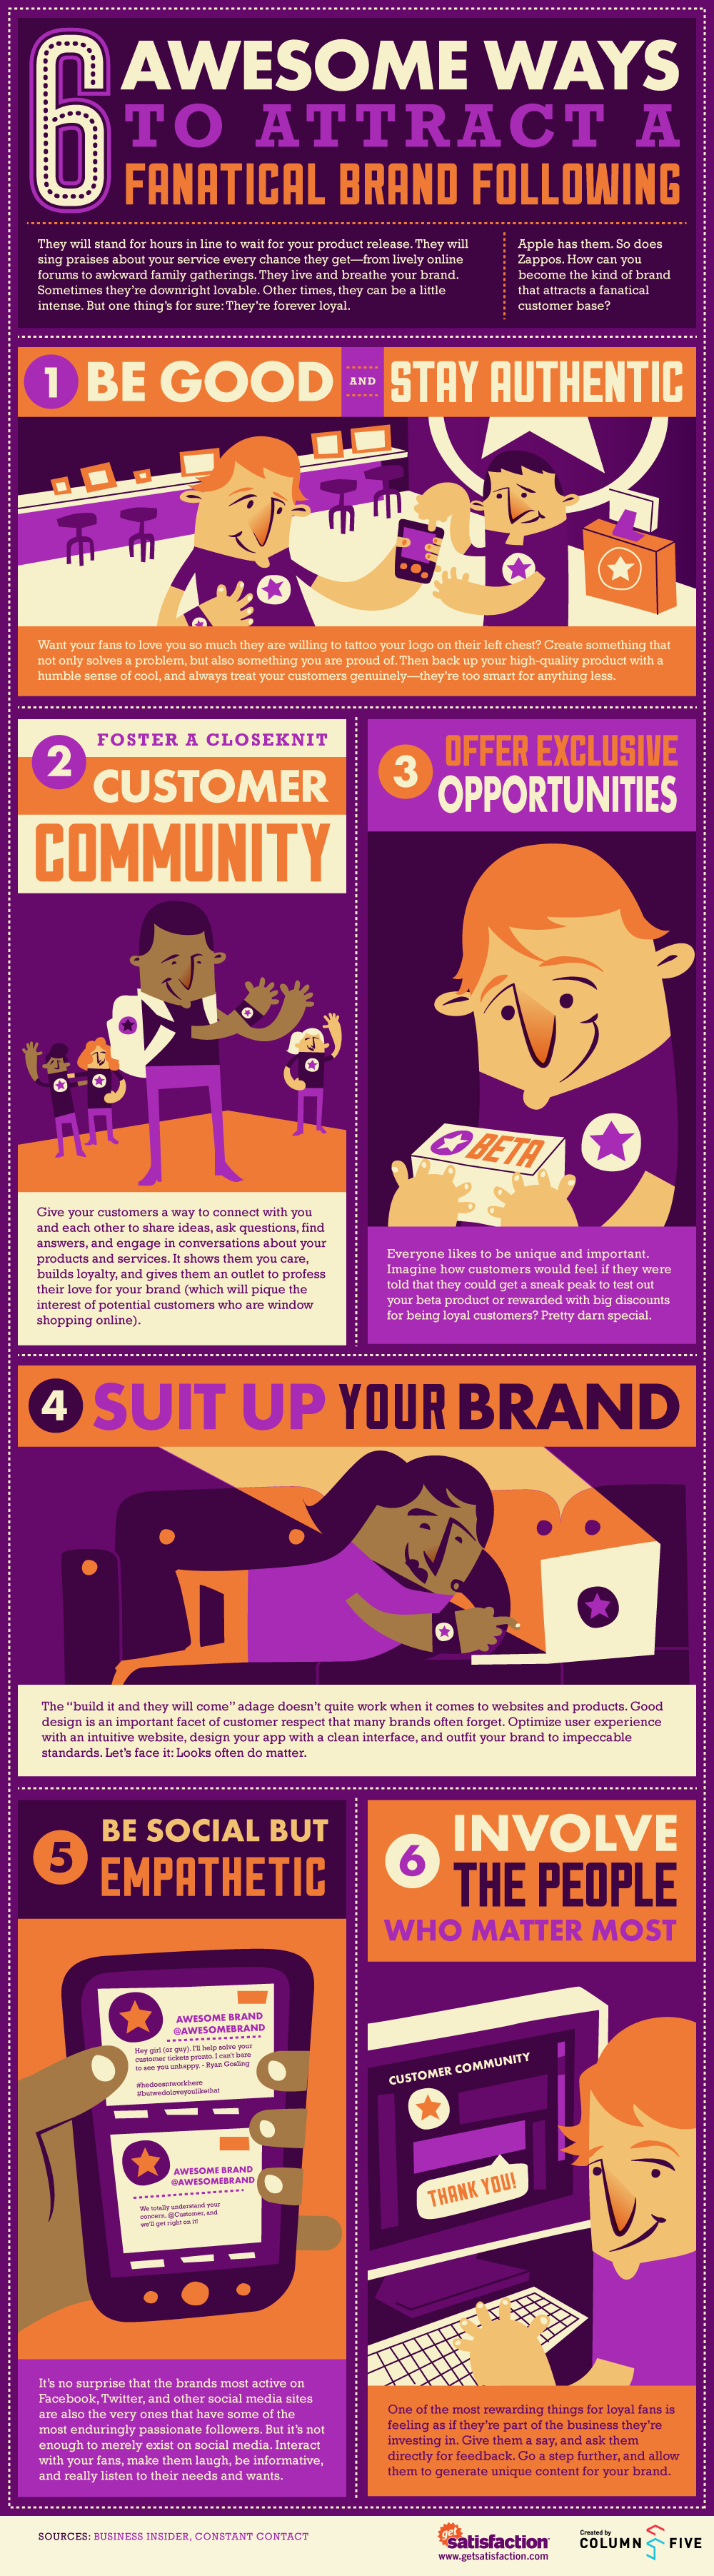 Infographic: Six Ways to Attract a Fanatical Brand Following